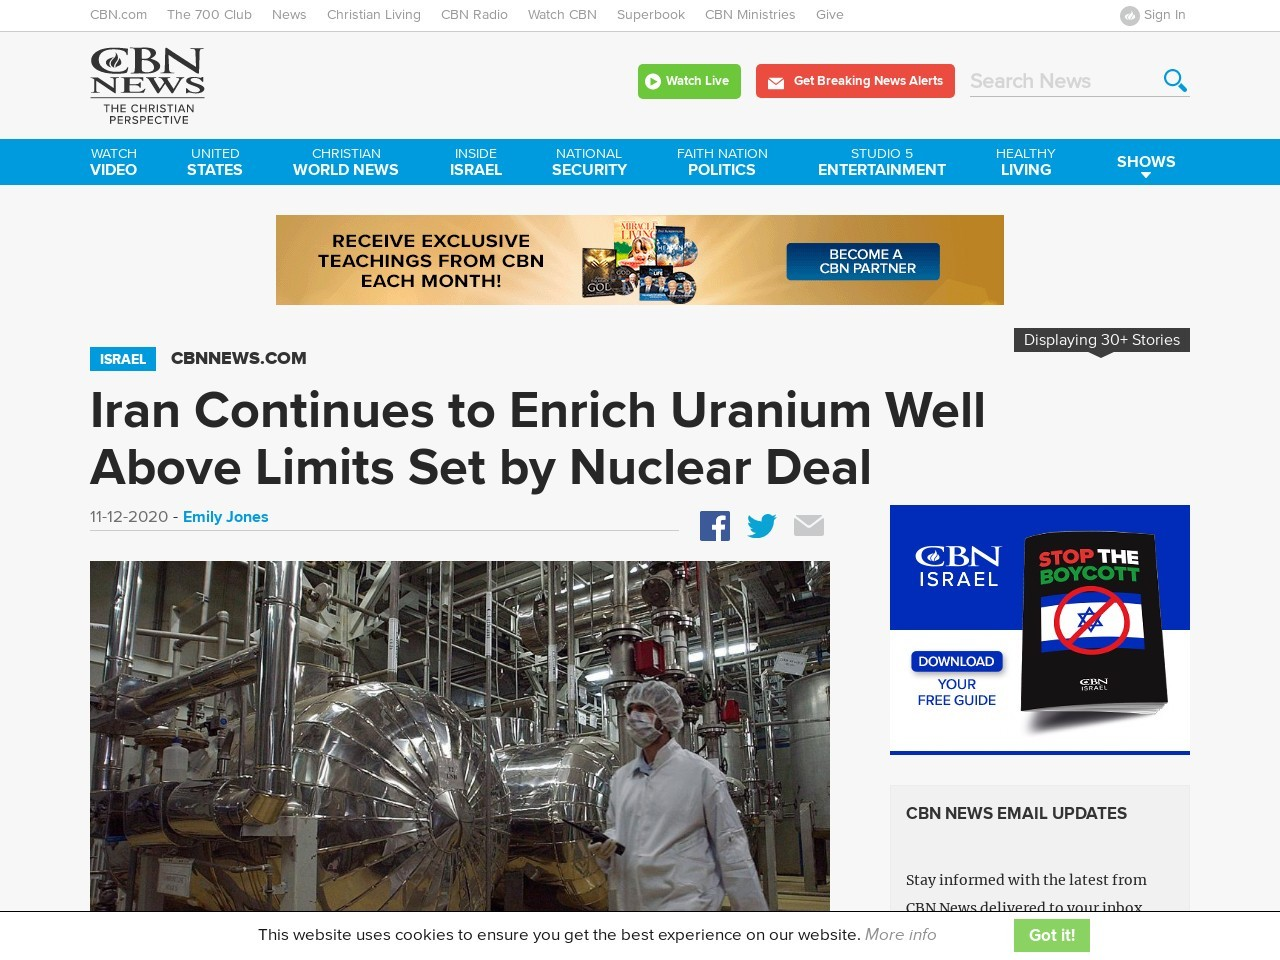 Iran Continues to Enrich Uranium Well Above Limits Set by Nuclear Deal